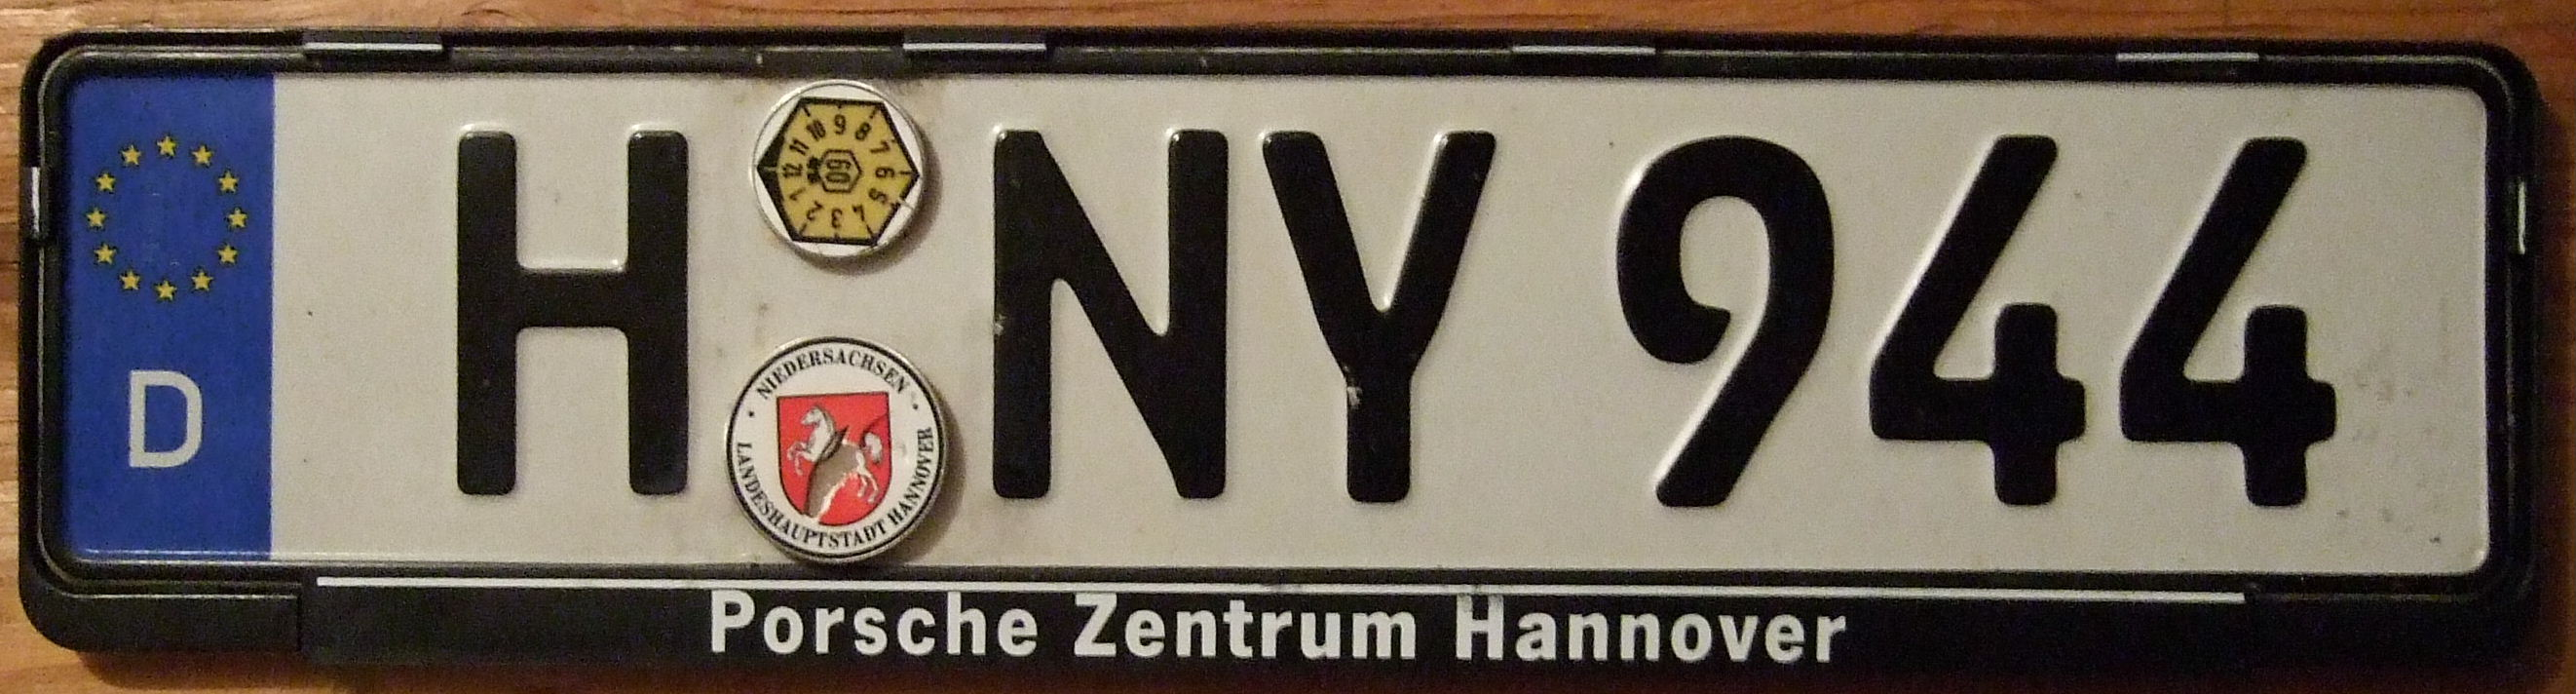 [Image: GERMANY_2009_HANNOVER_PLATE_with_HANNOVE...y1778a.jpg]